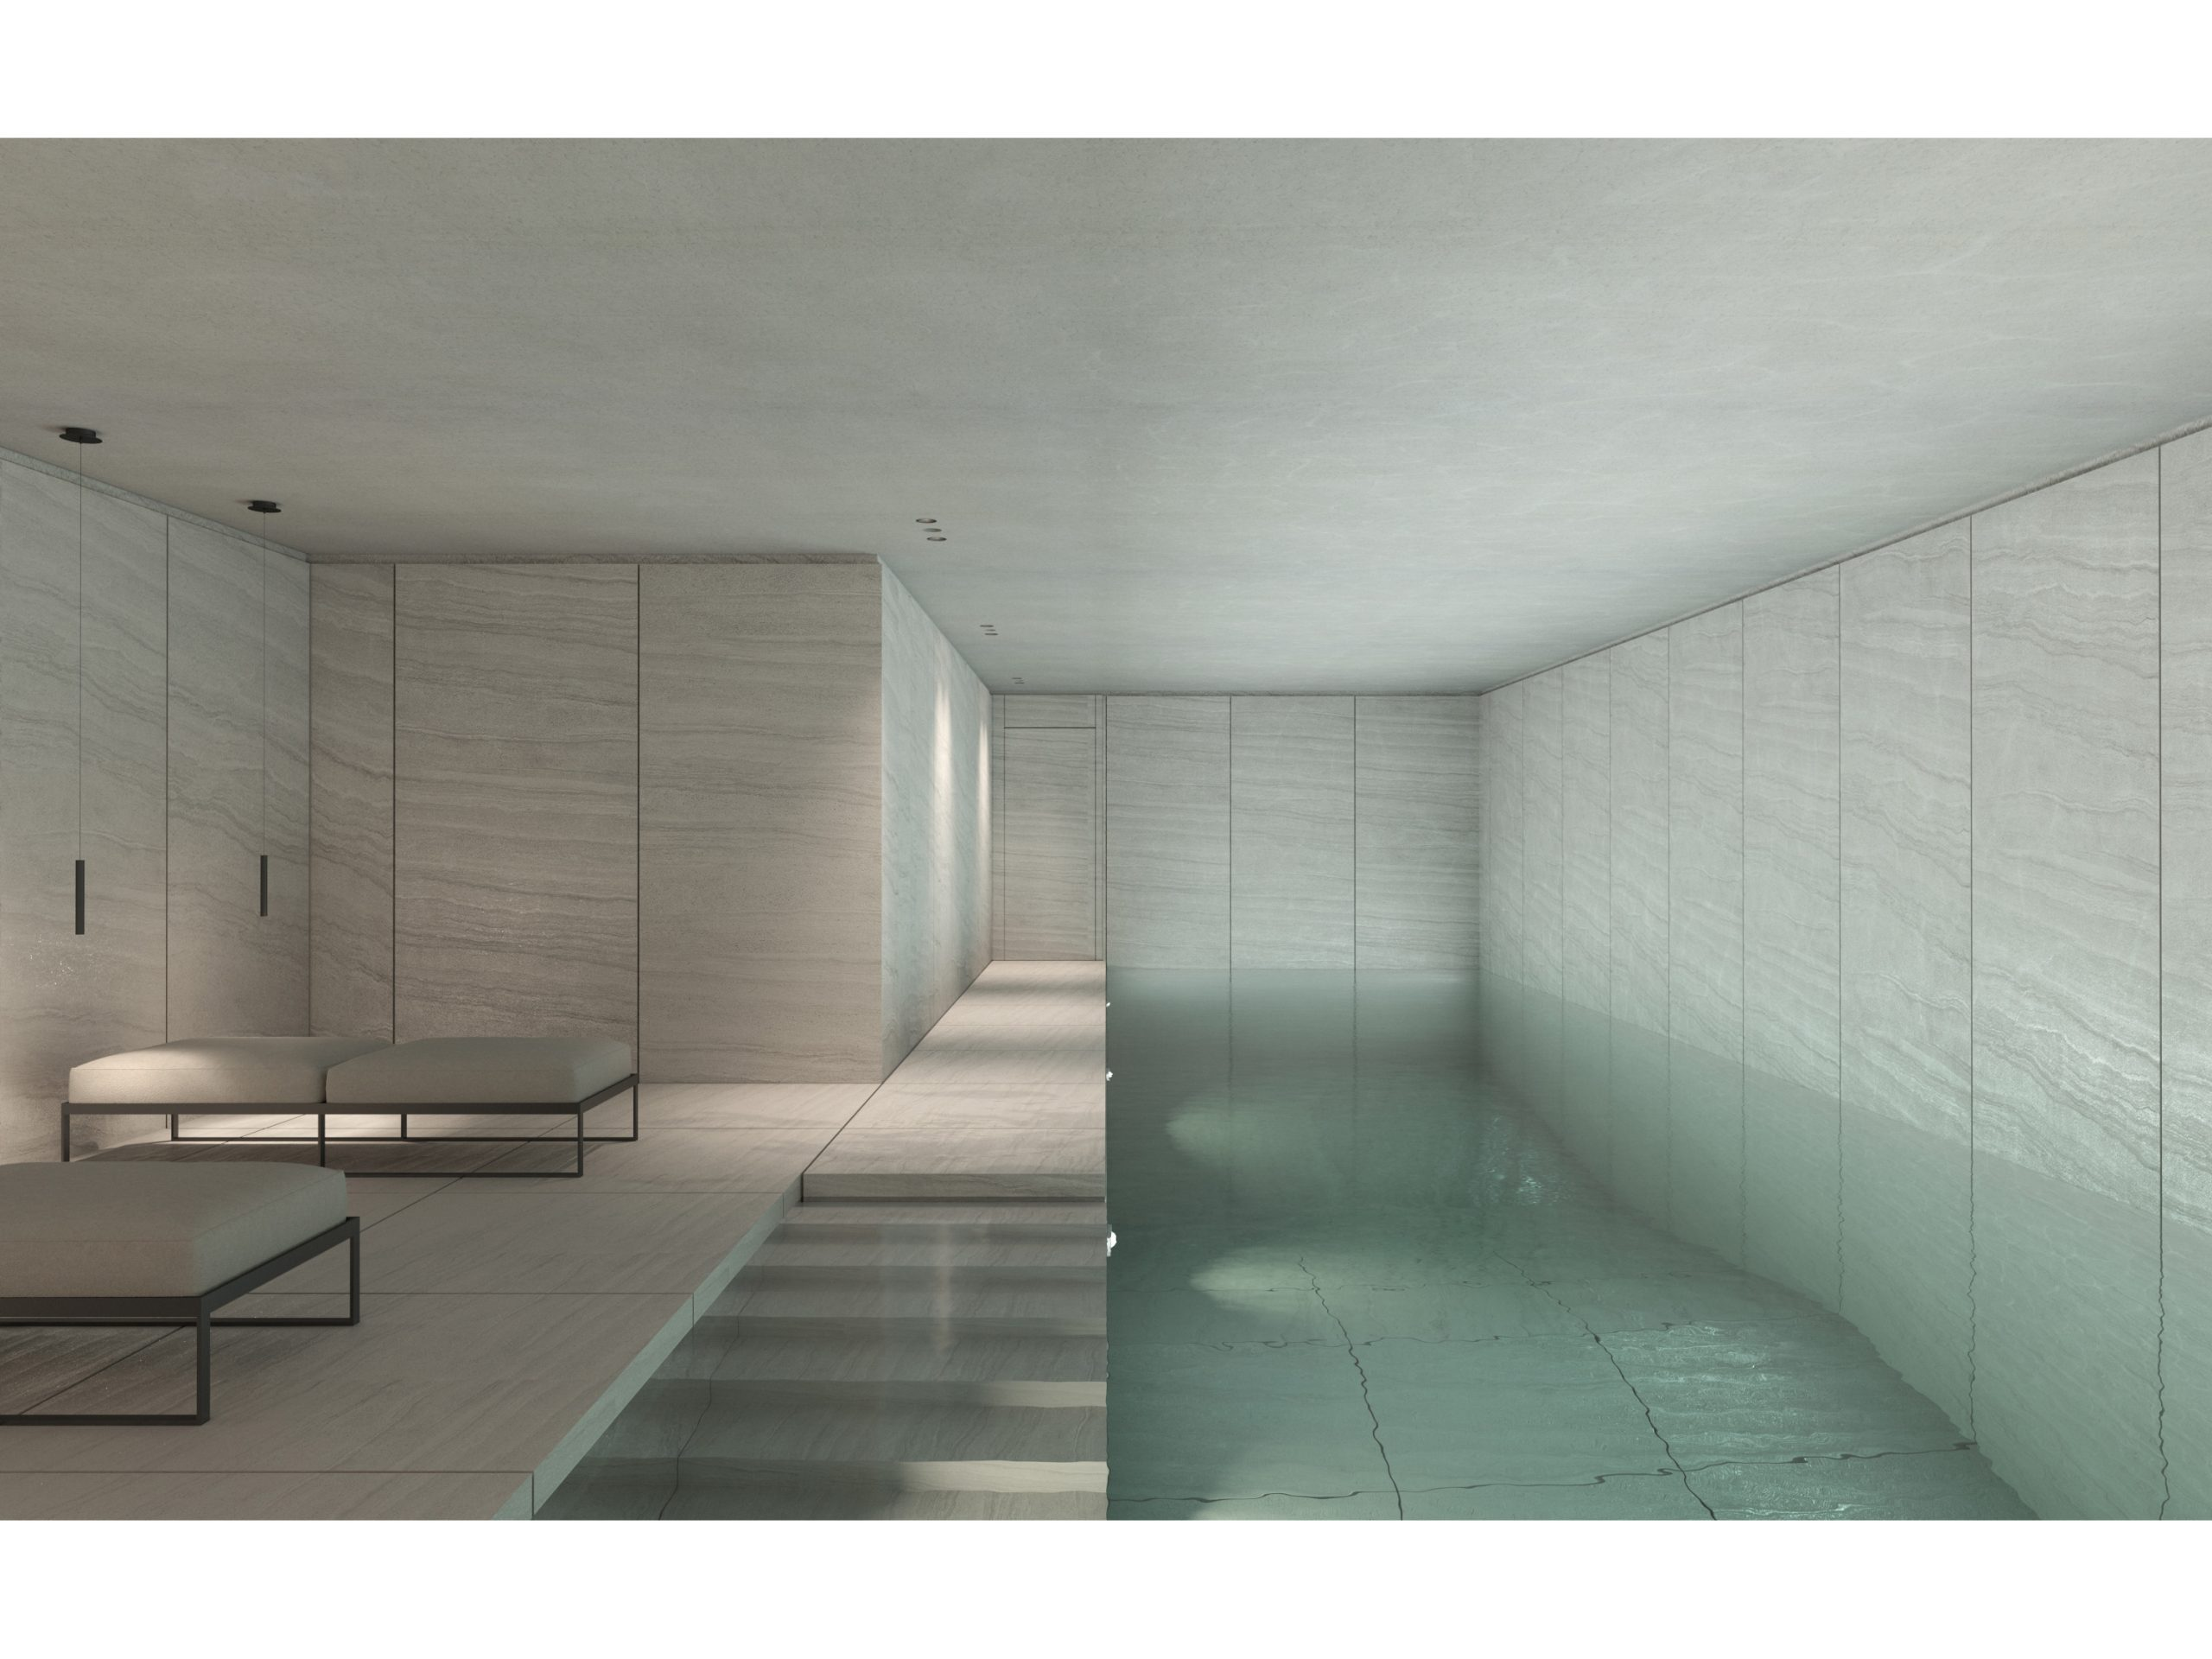 Architectural Interior Visualization for an interior pool by Philippe Meyer.